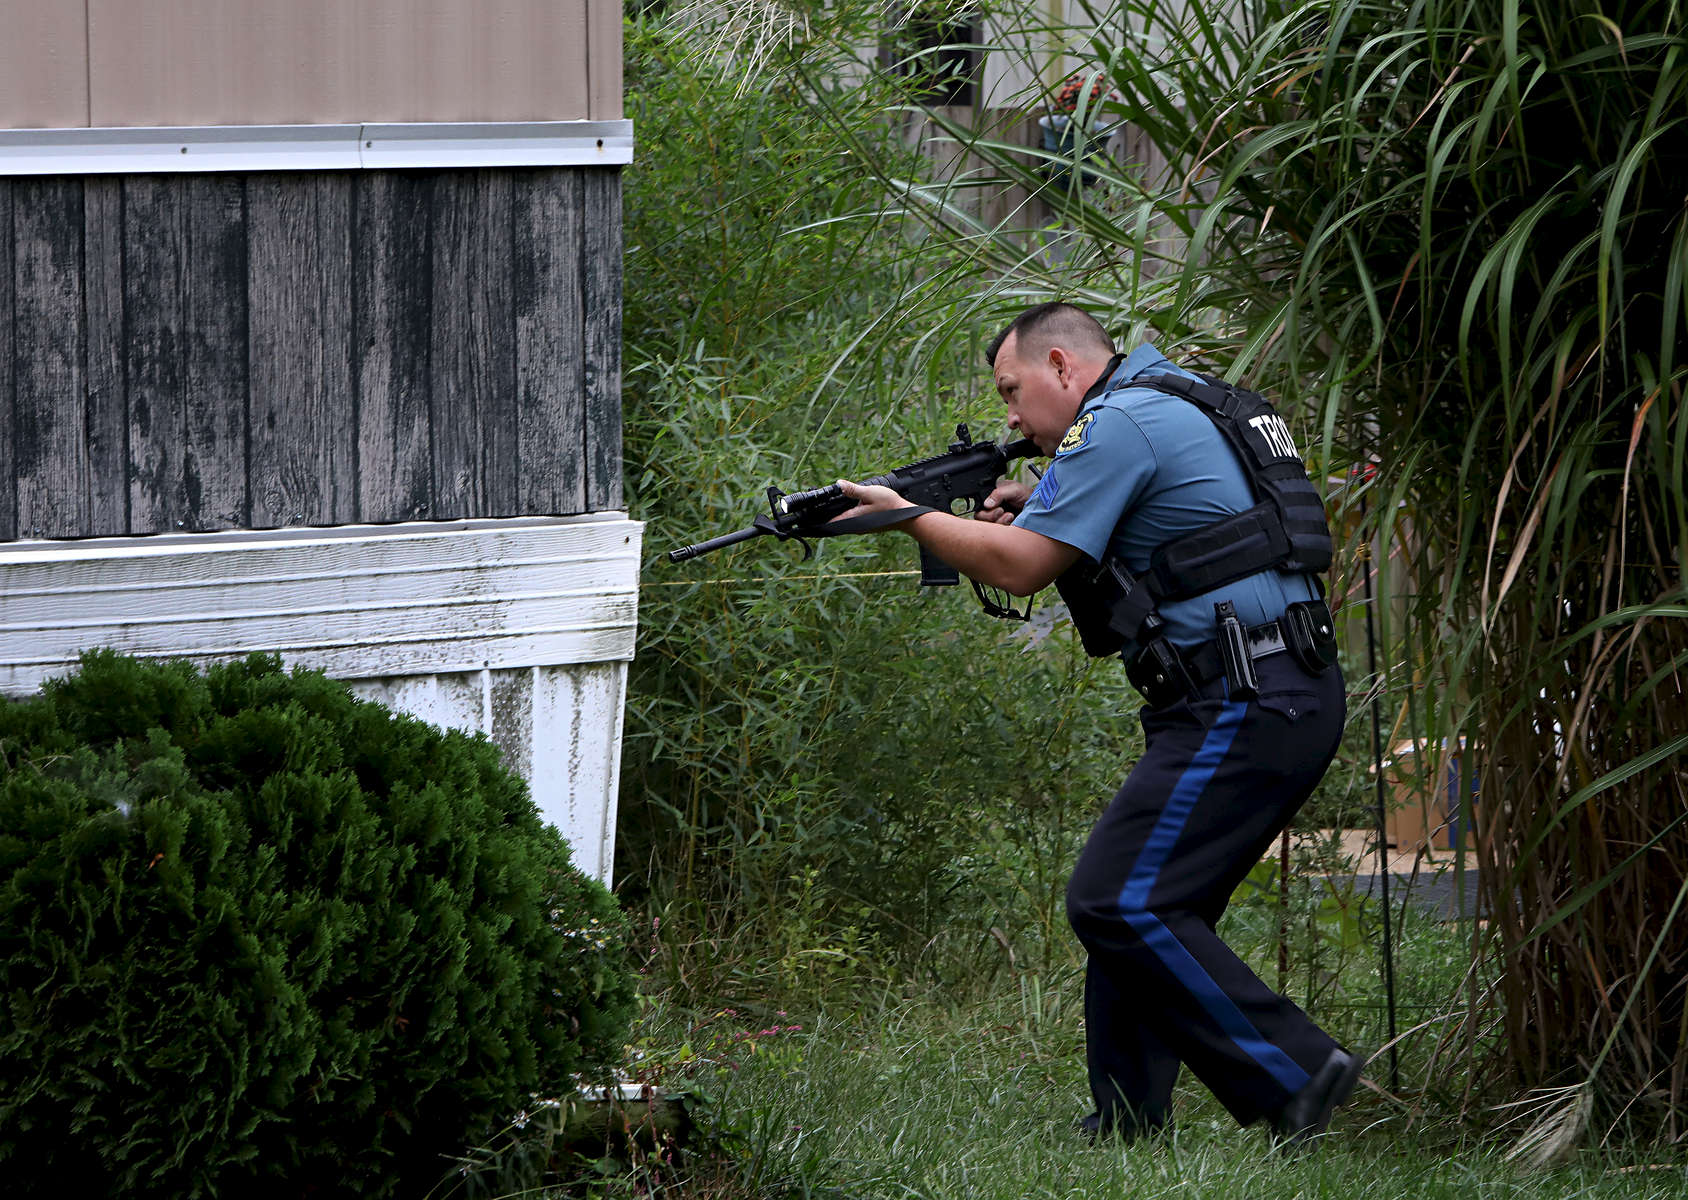 A Missouri State Trooper searches for suspects wanted in connection with a homicide in an area off of Golden Oak Drive in Fenton on Wednesday, Oct. 11, 2017.Photo by David Carson, dcarson@post-dispatch.com